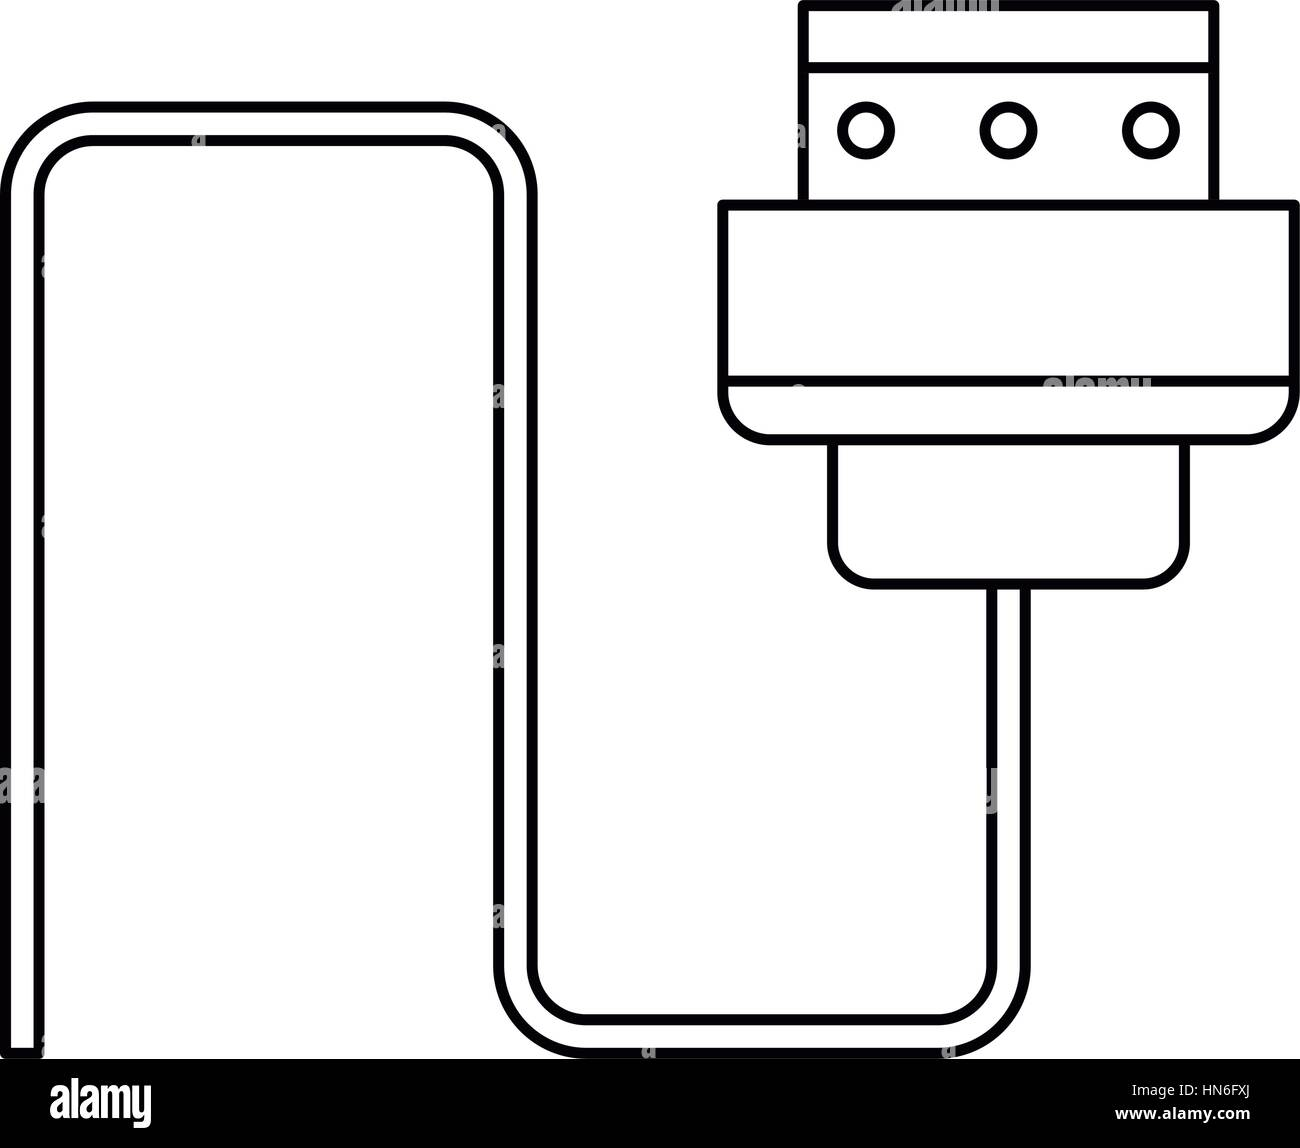 Thin Wire Isolated Stockfotos & Thin Wire Isolated Bilder - Alamy